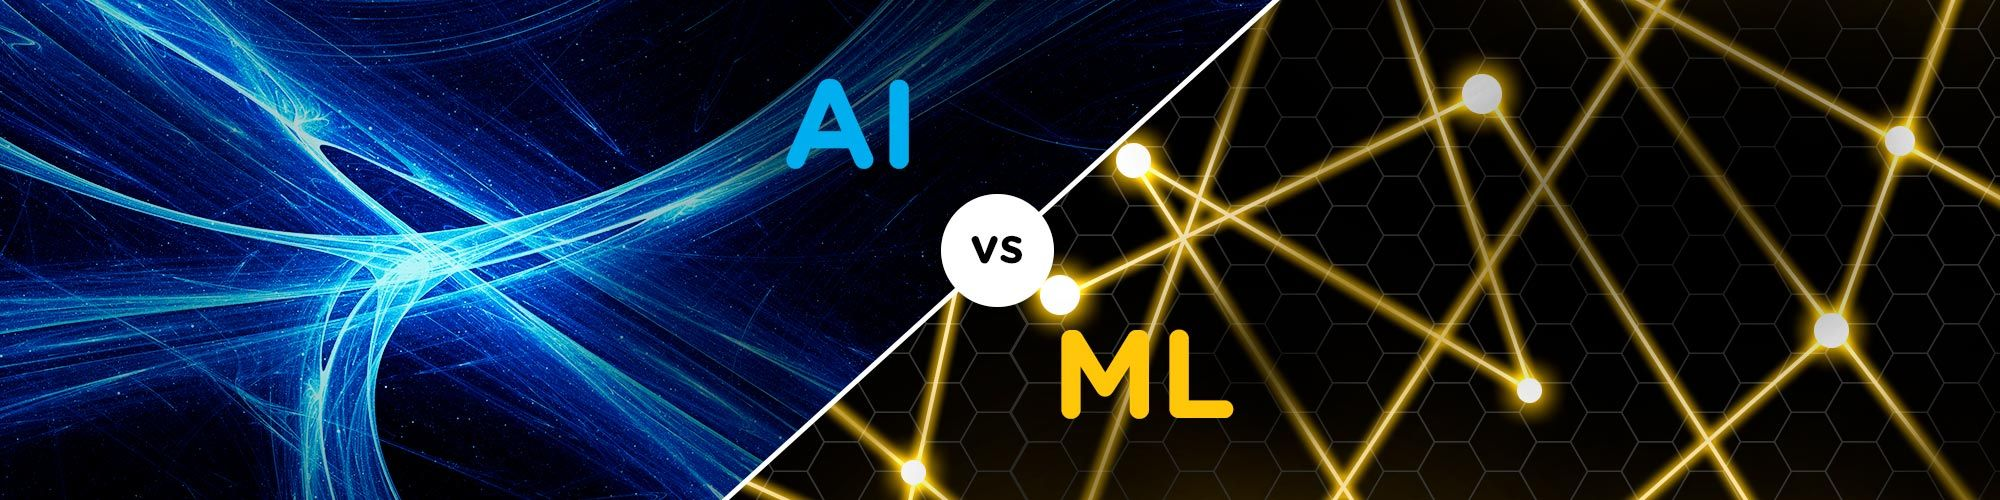 /ai-vs-ml-whats-the-difference-3pt37h9 feature image